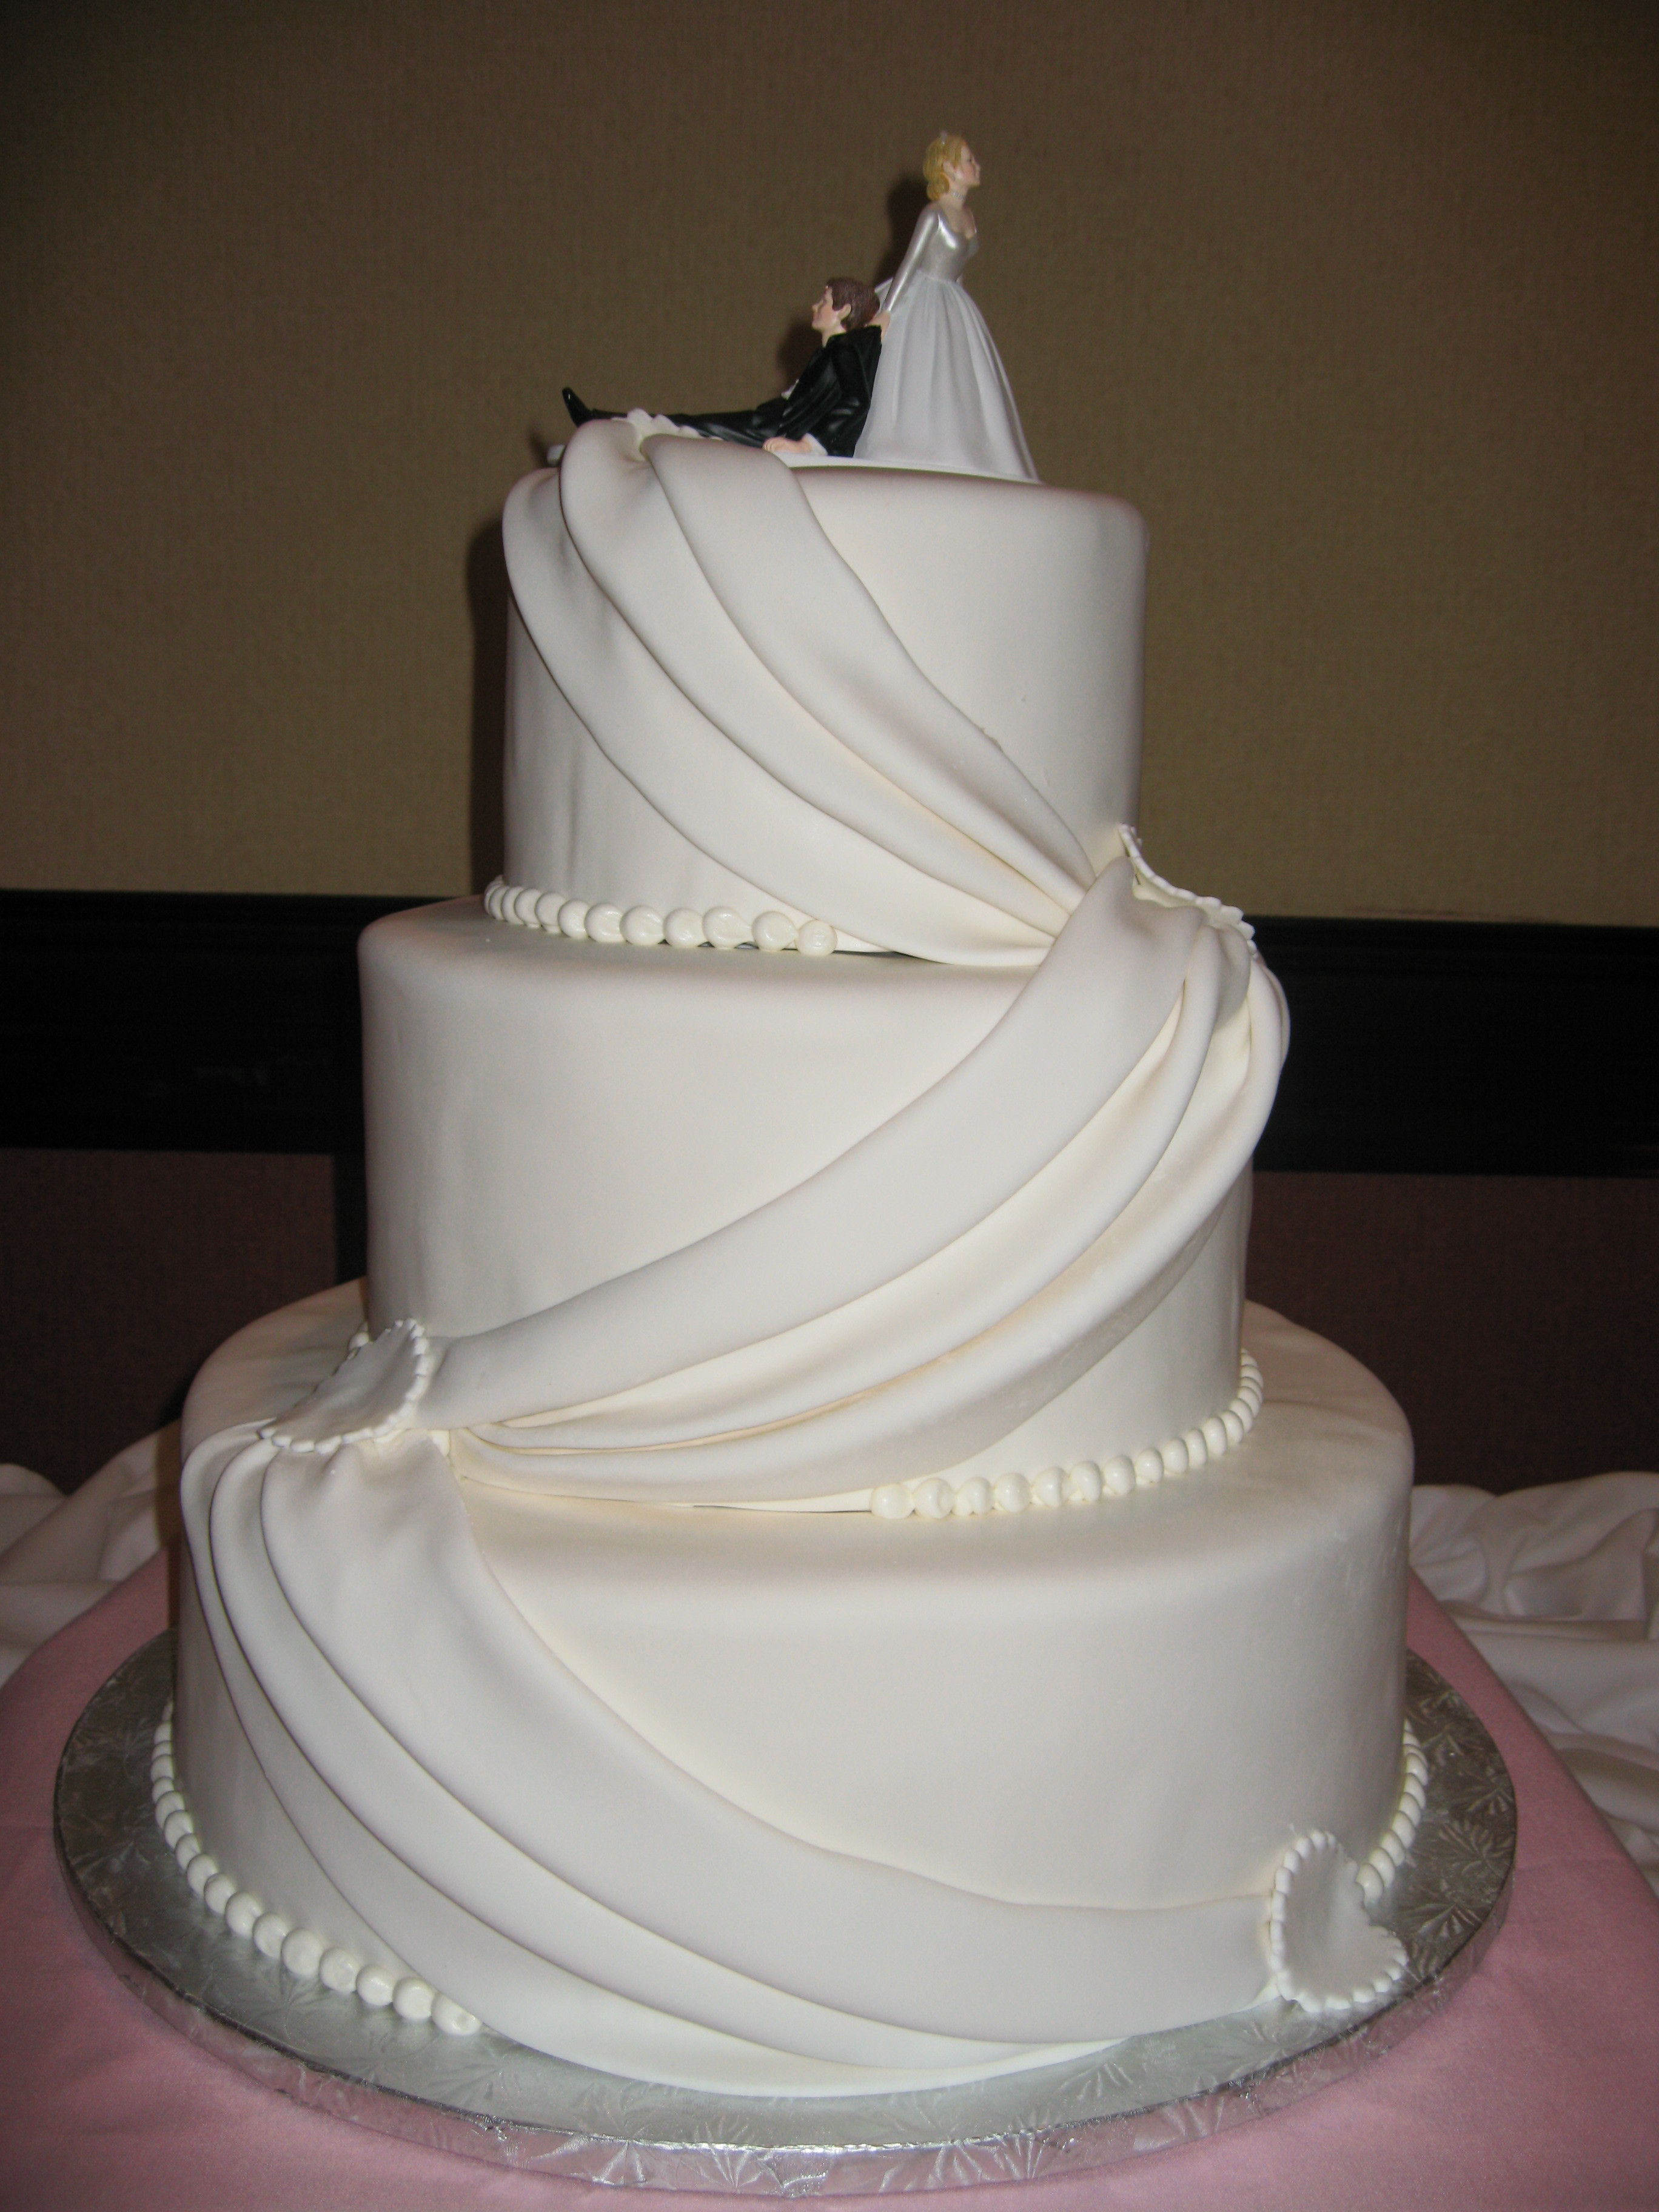 Wedding Cakes Ornaments  Wedding Cake Decorations Wedding Planner and Decorations